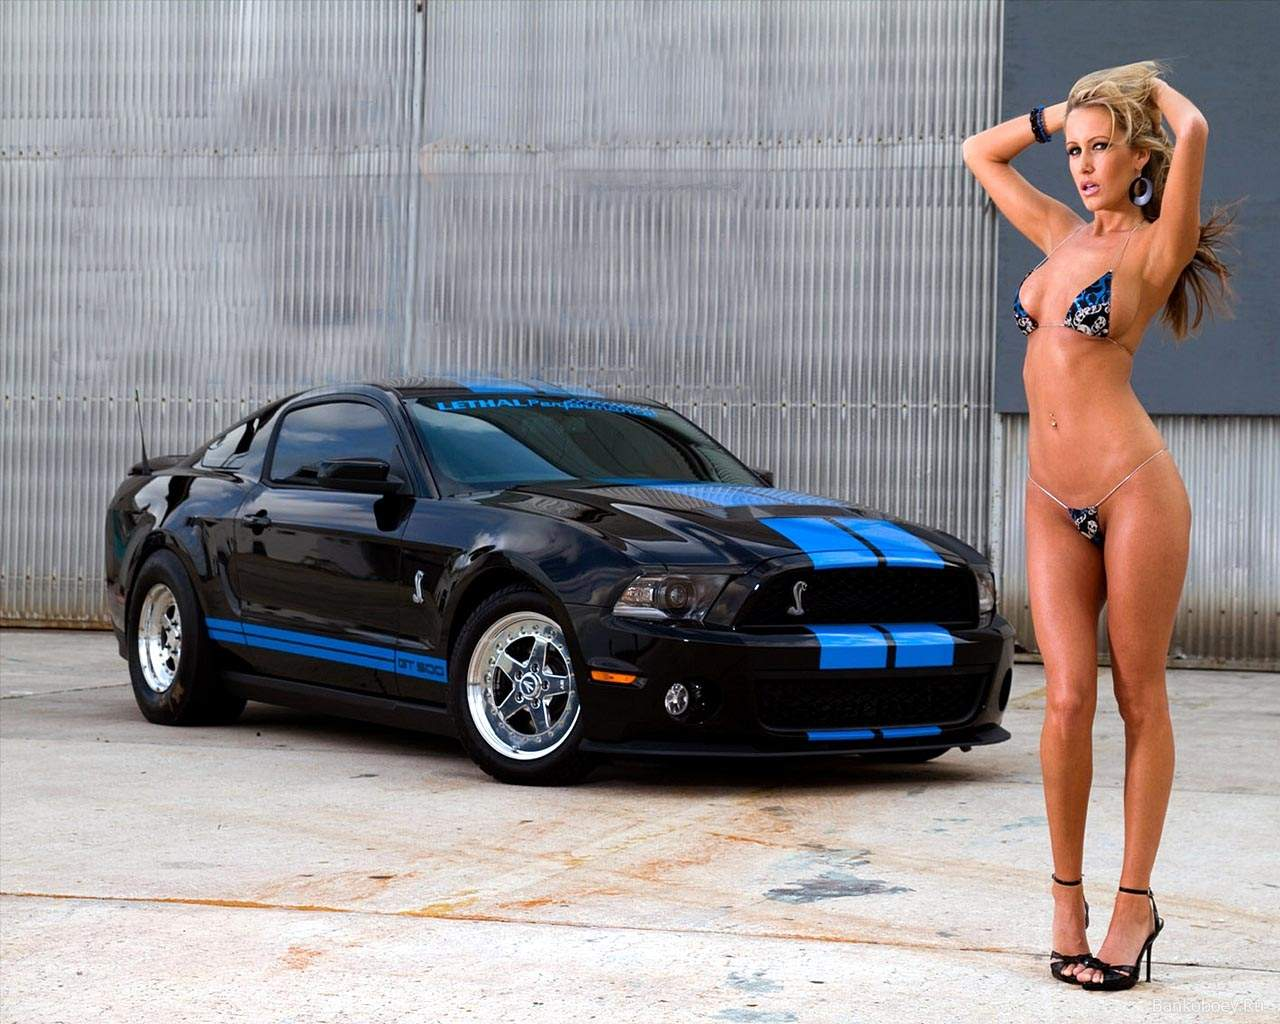 2013 ford mustang sports car and girls